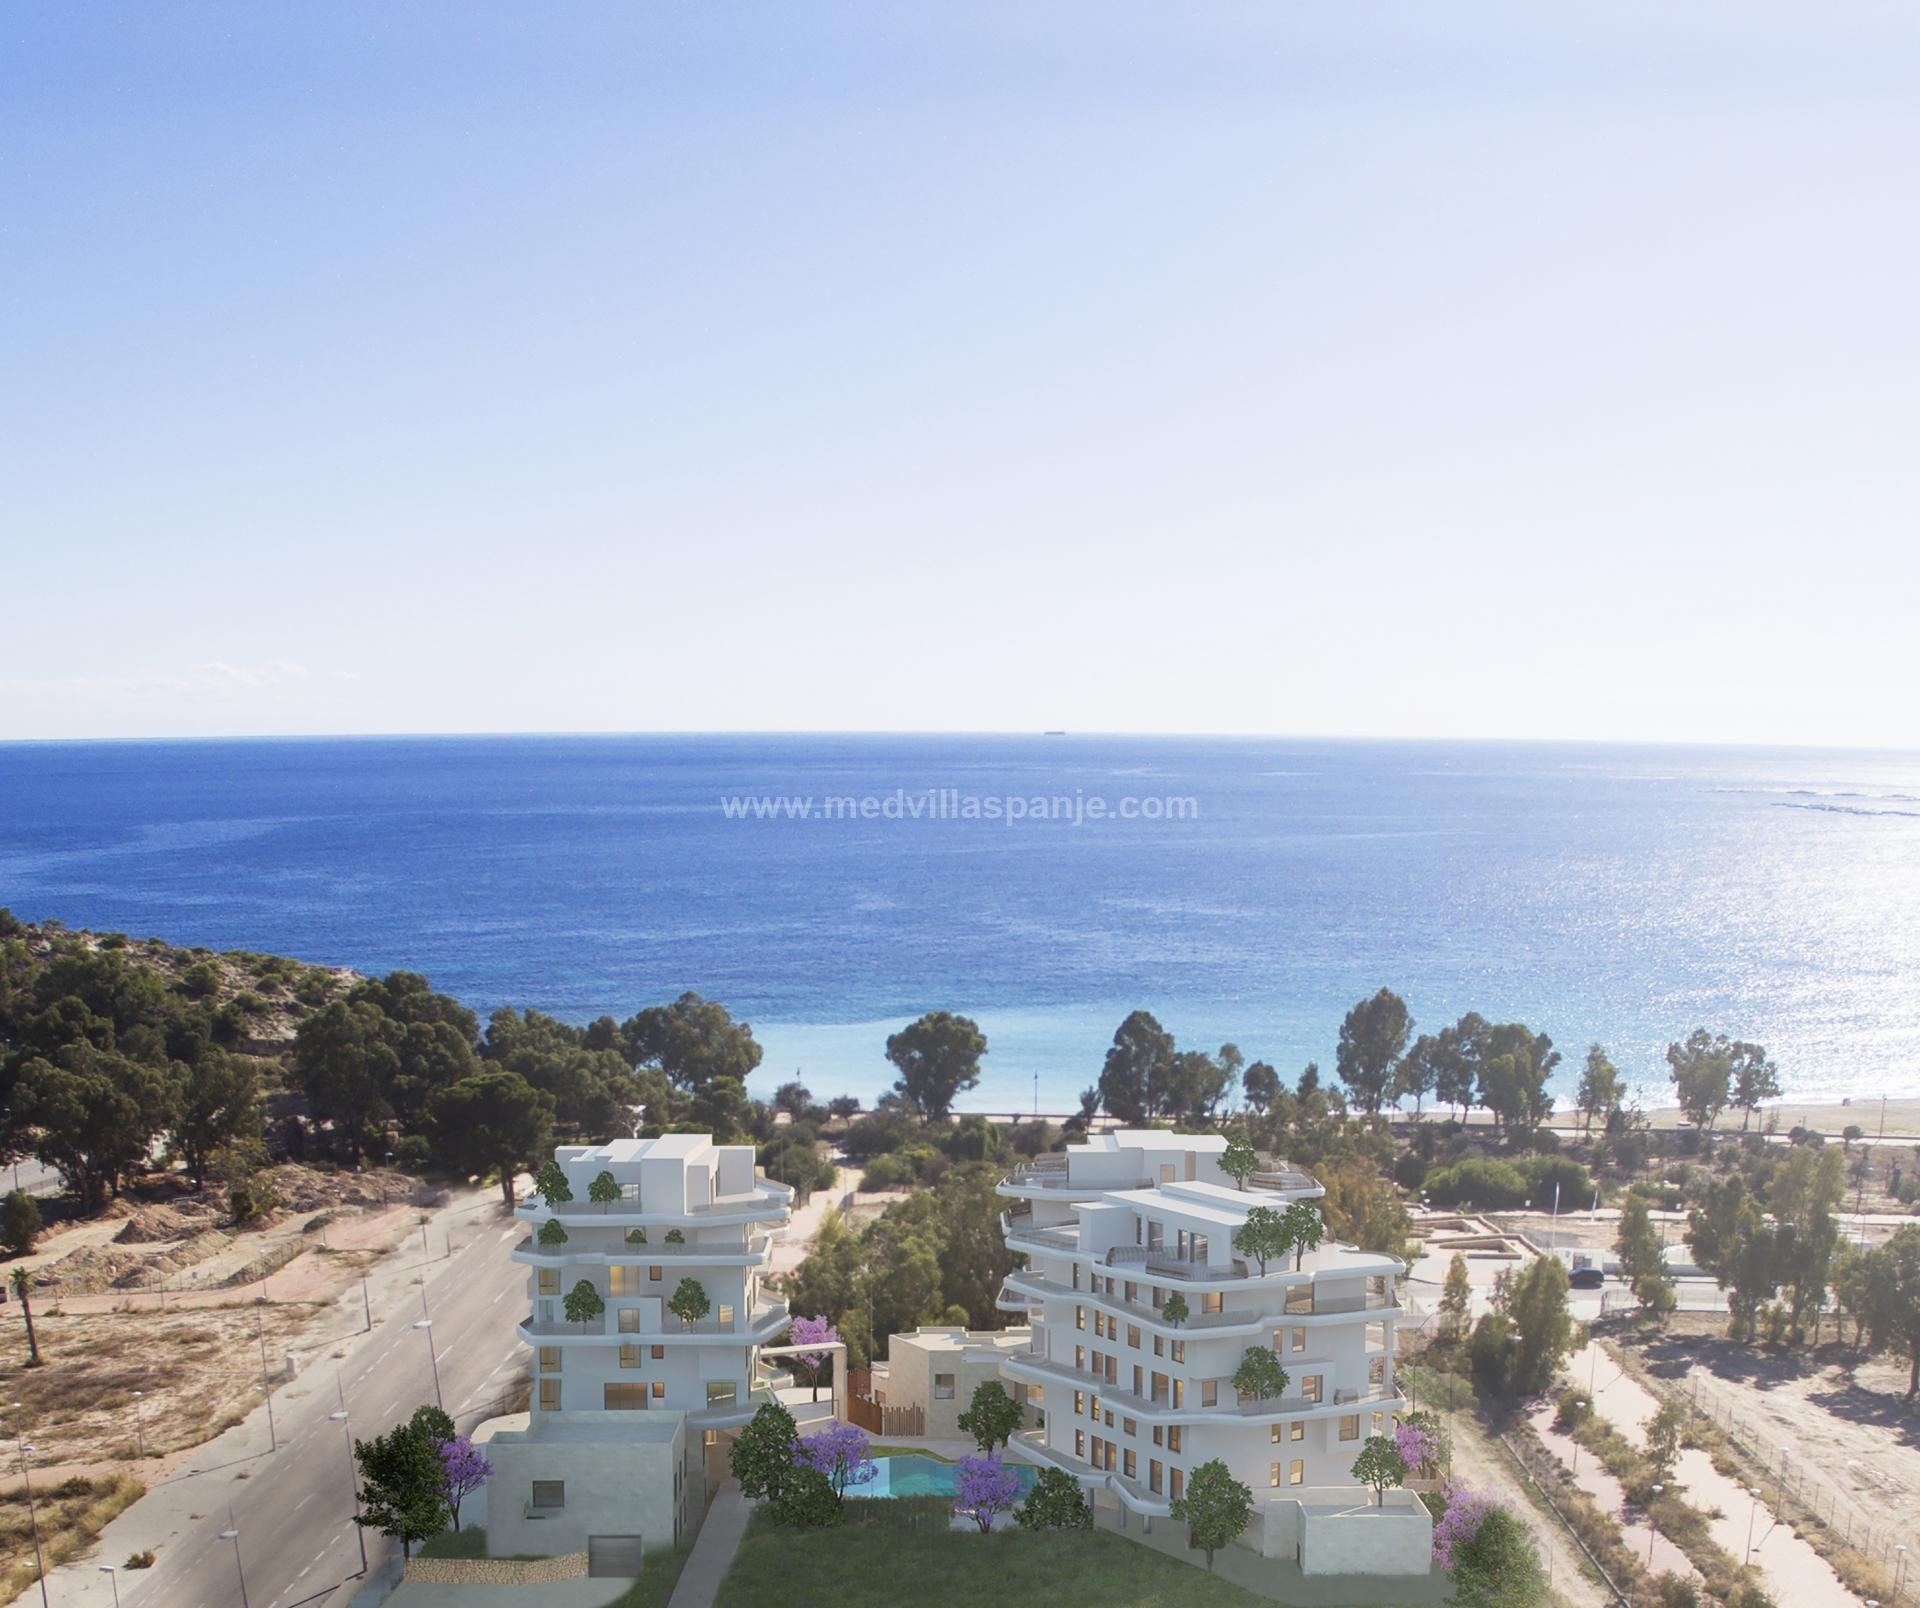 2 bedroom apartment on Villajoyosa beach in Medvilla Spanje